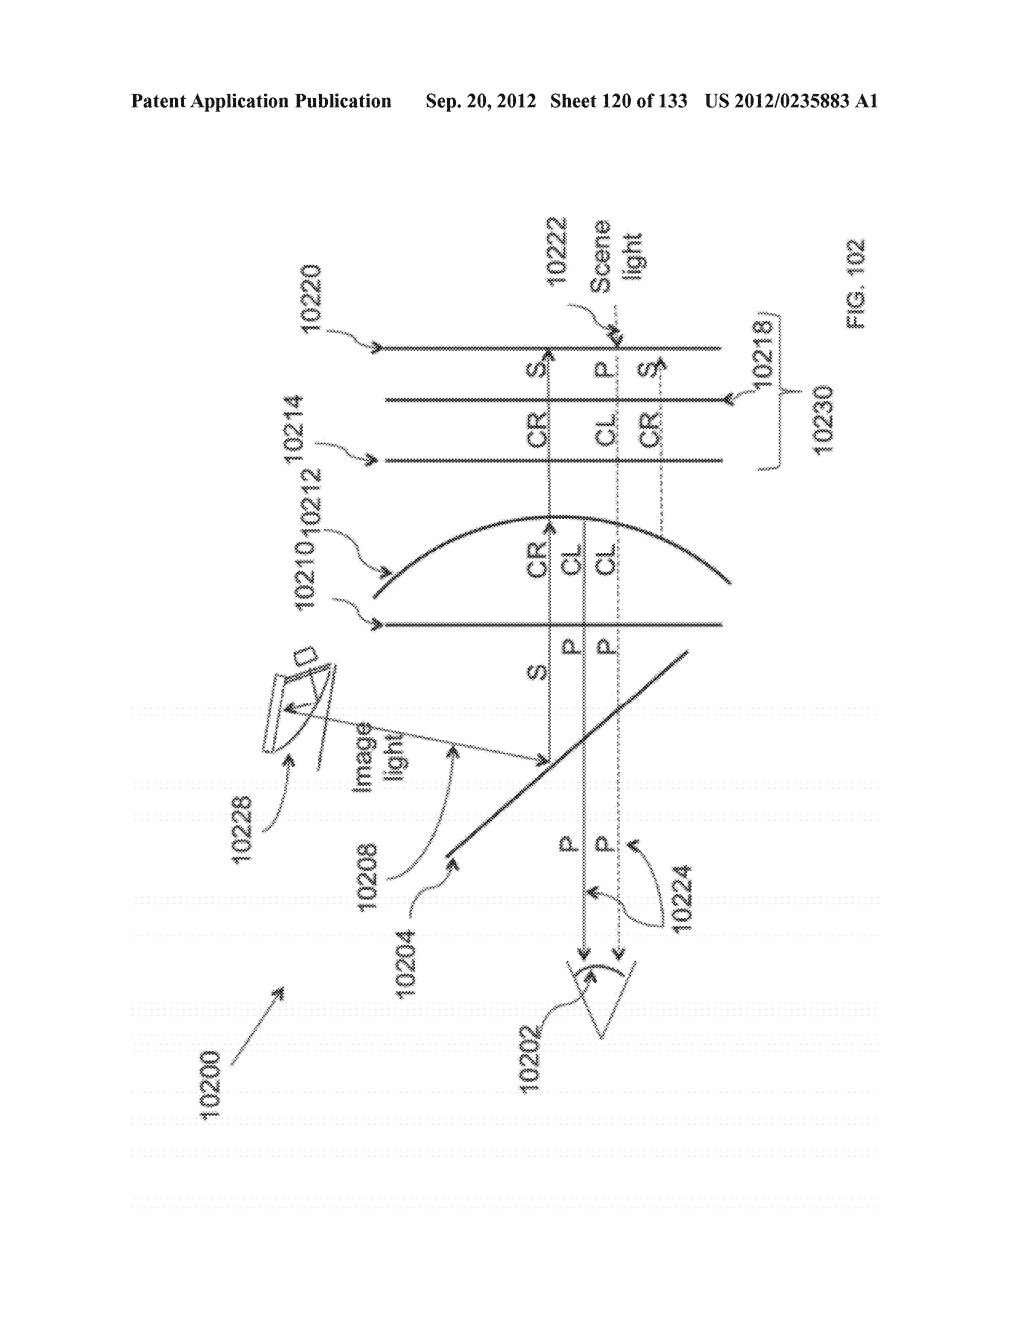 SEE-THROUGH NEAR-EYE DISPLAY GLASSES WITH A LIGHT TRANSMISSIVE WEDGE     SHAPED ILLUMINATION SYSTEM - diagram, schematic, and image 121